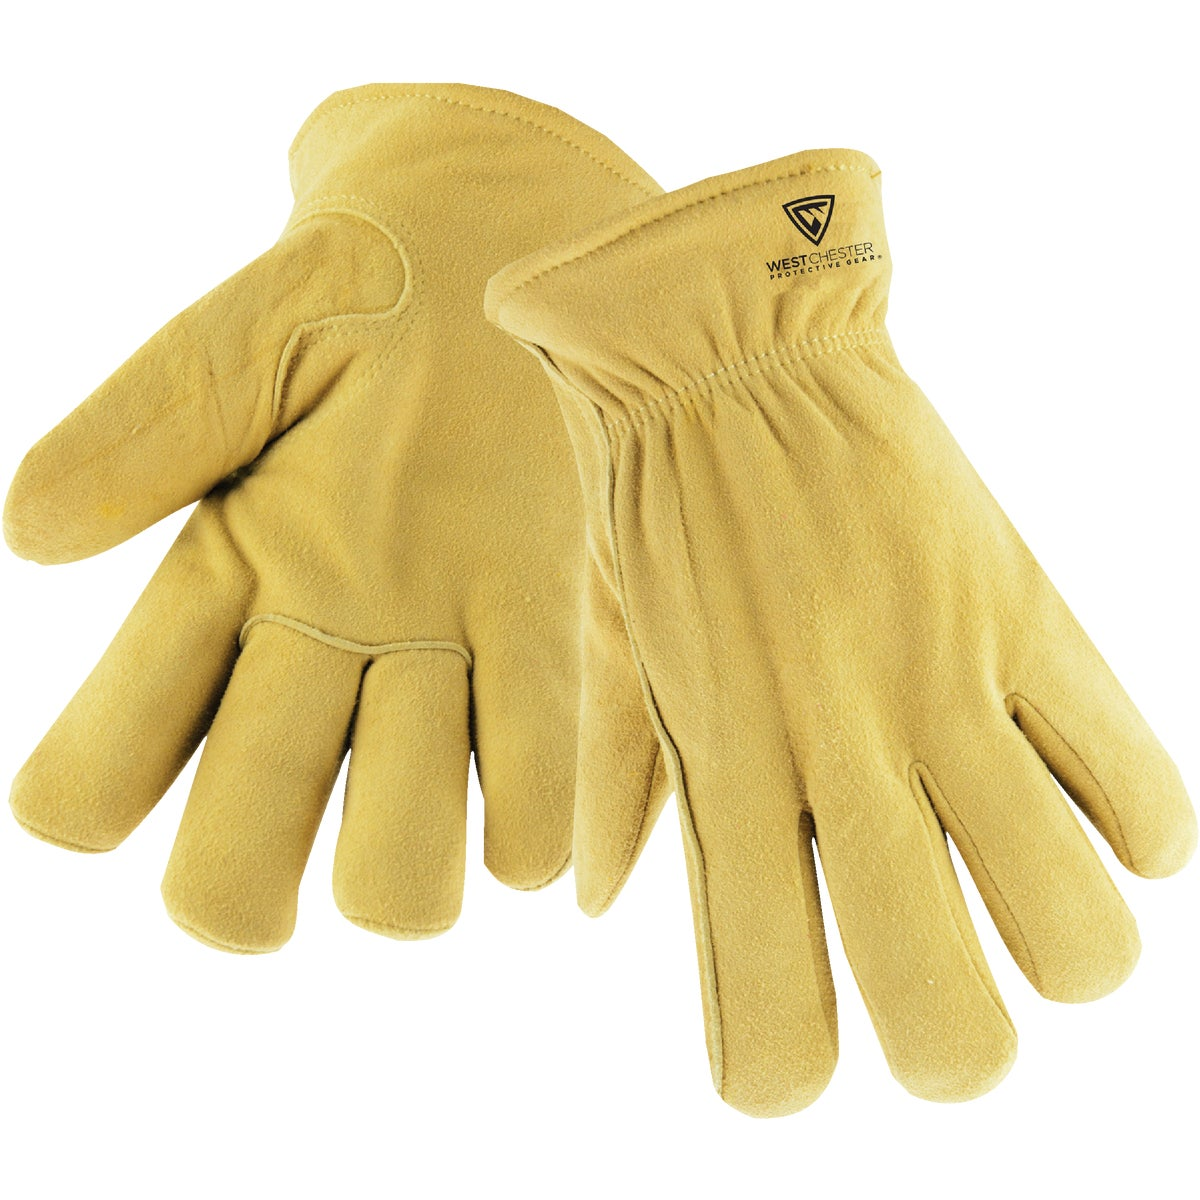 MED GRIPS LINED GLOVE - 1091M by Wells Lamont